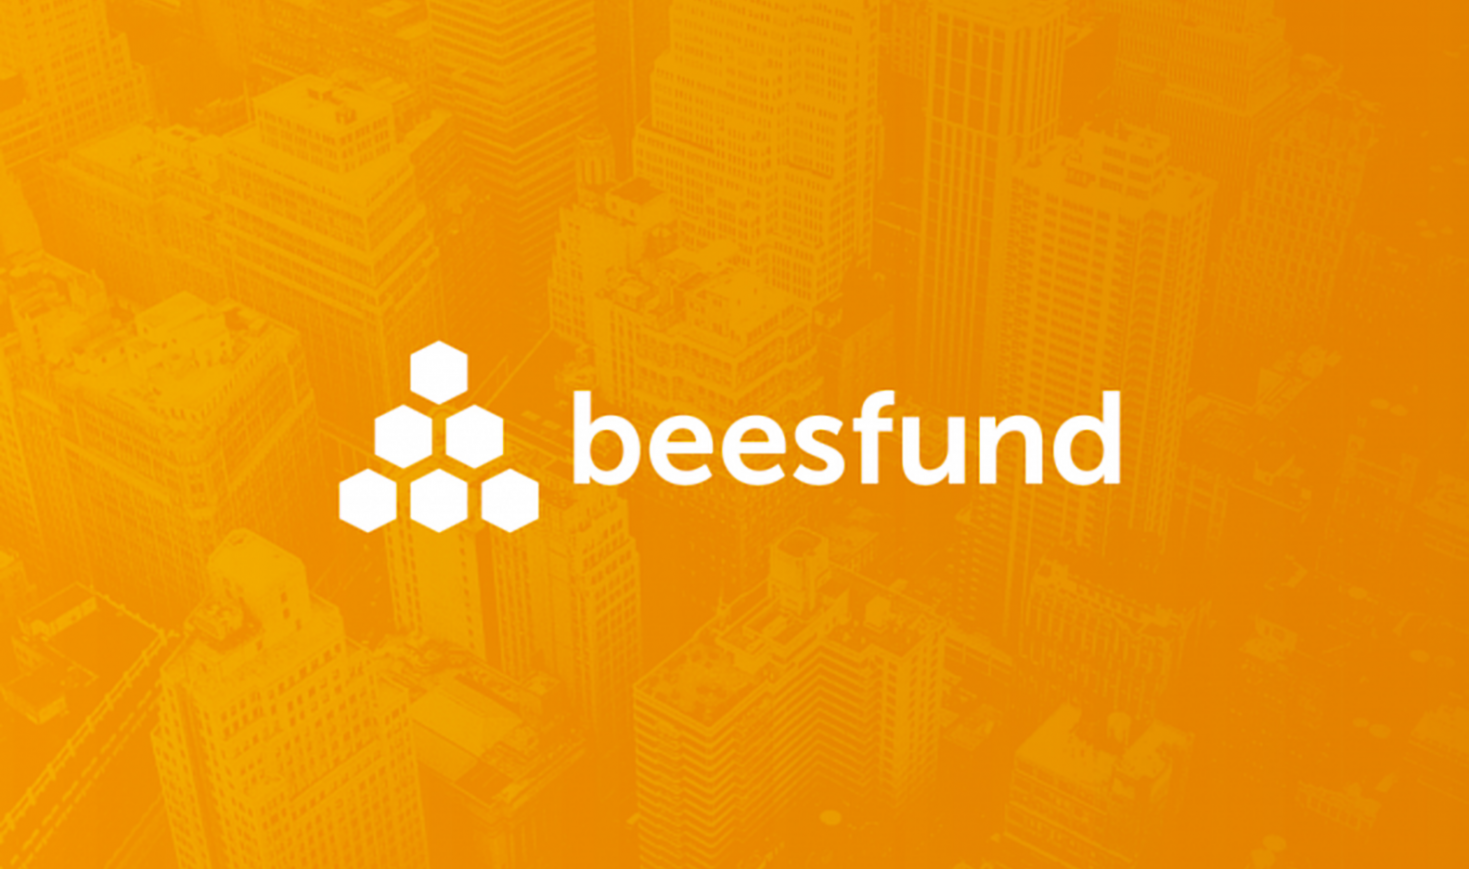 Beesfund S.A. logo